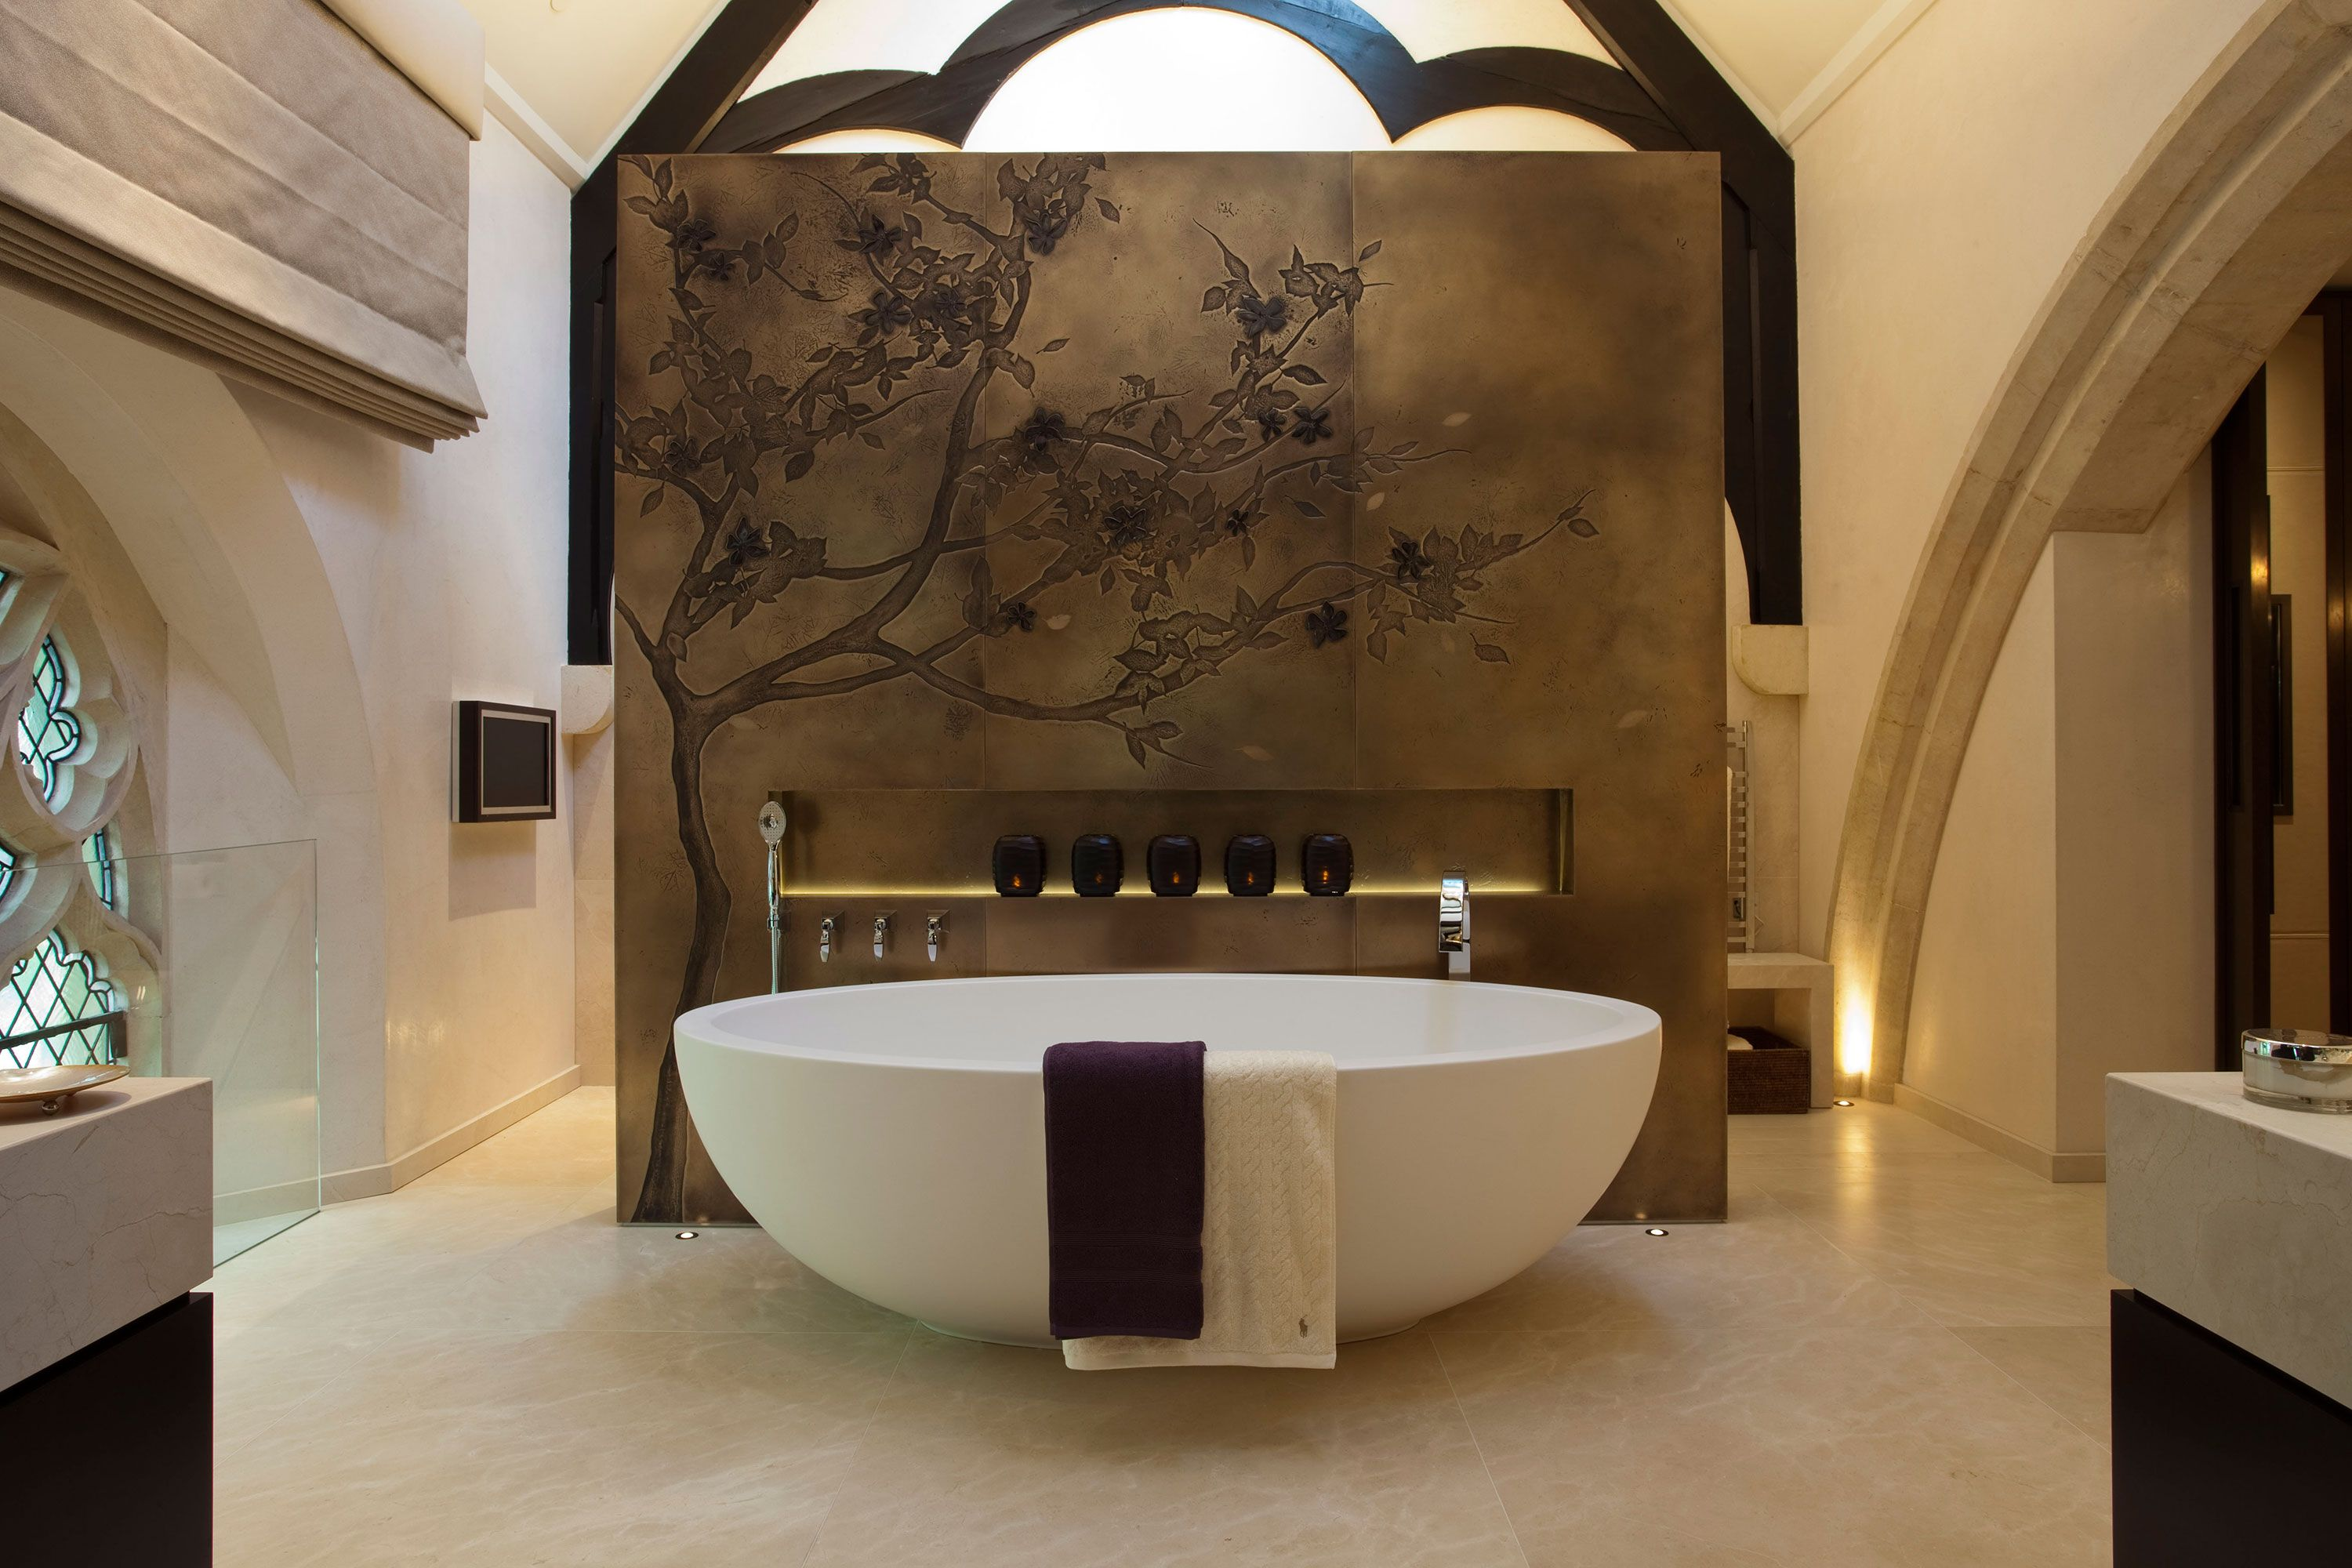 50 Best Freestanding Tubs - Pictures of Stylish Freestanding Soaking ...